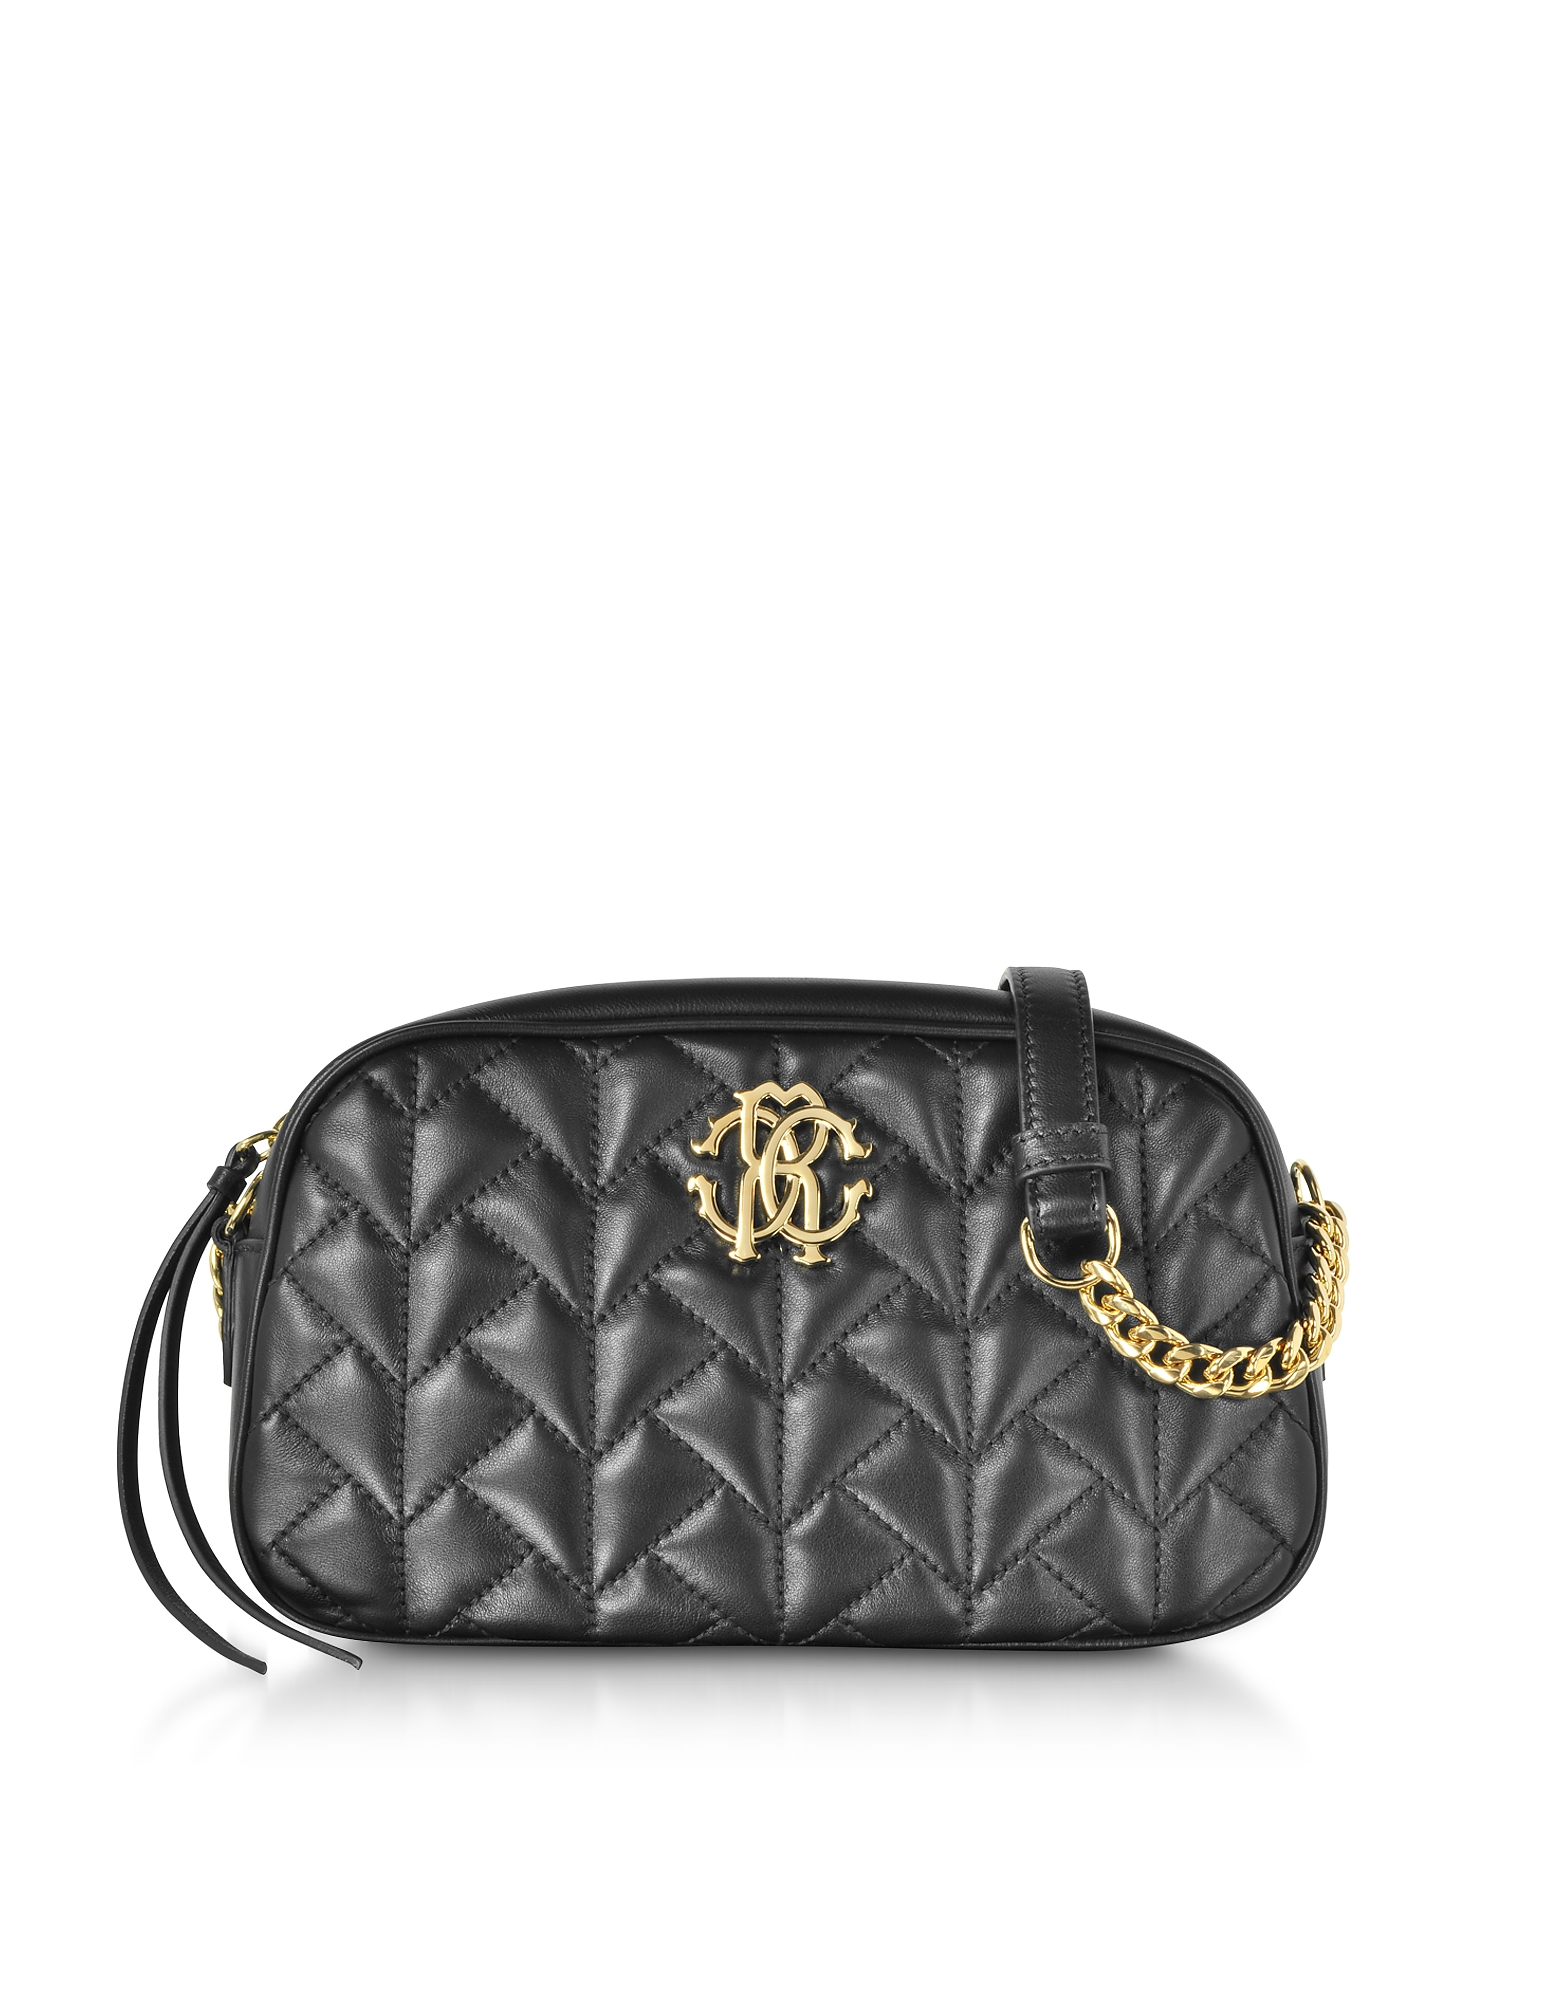 Roberto Cavalli Handbags, Black Quilted Leather Crossbody Bag